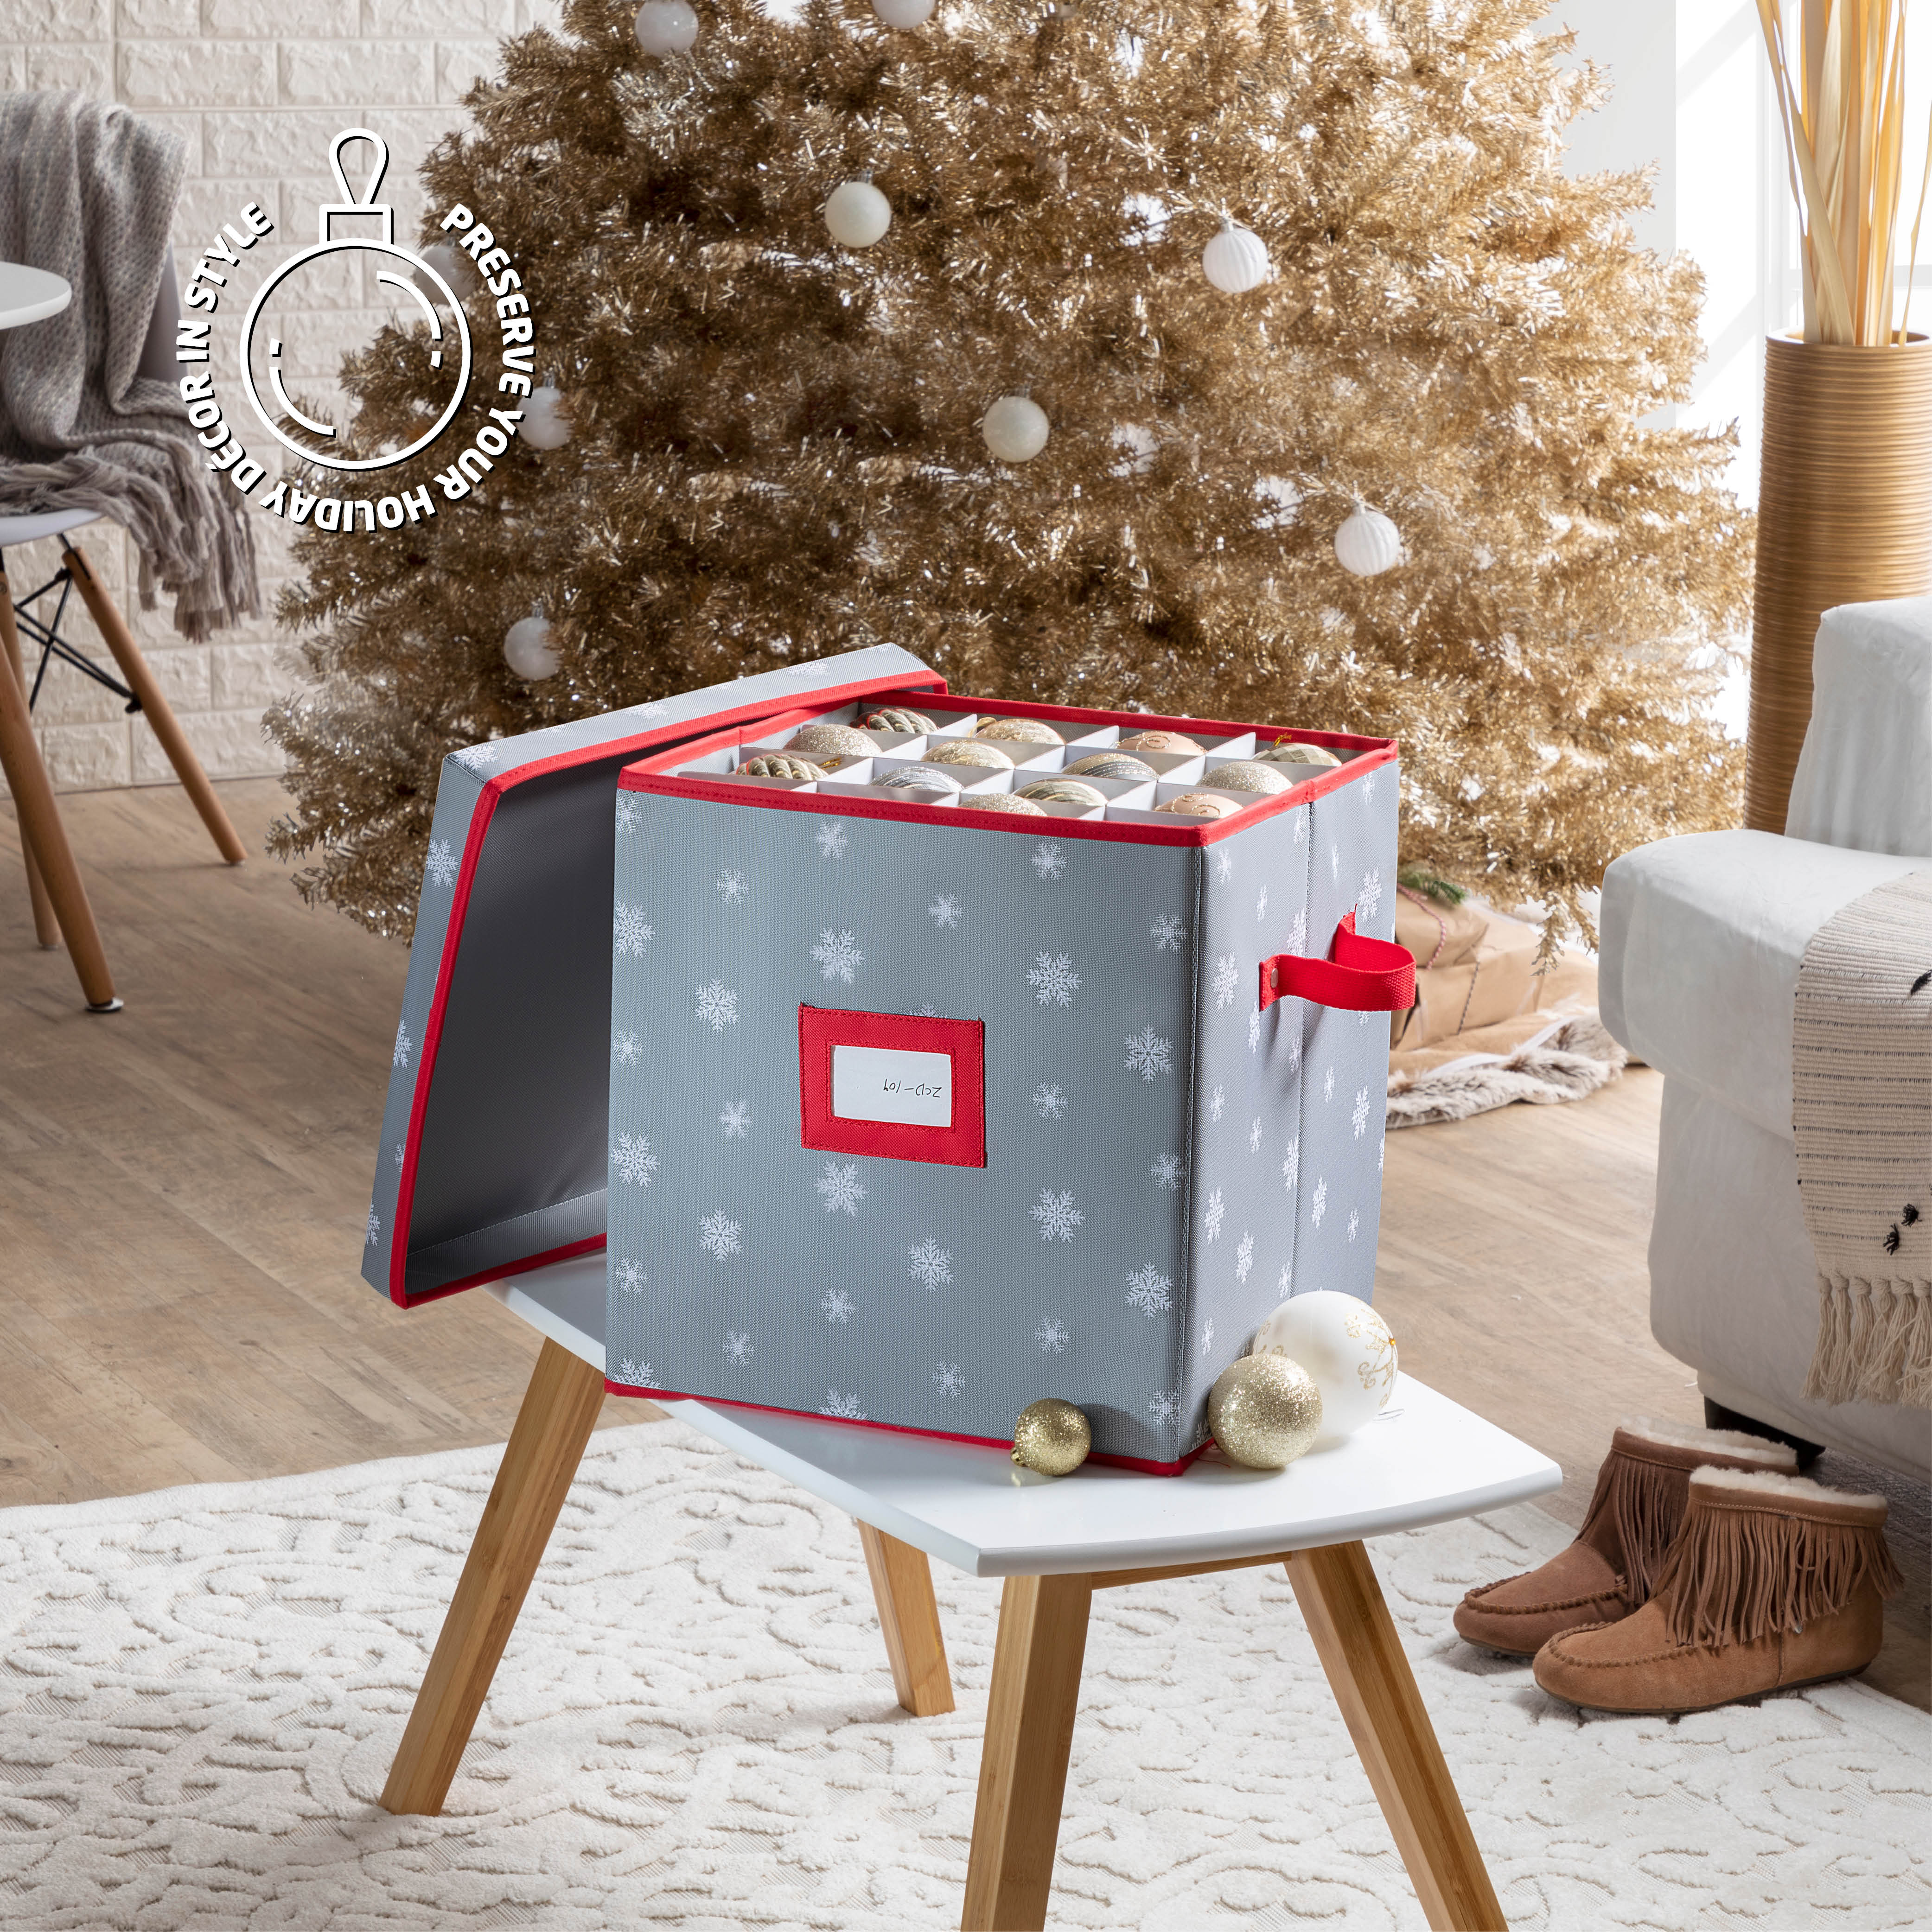 Christmas Waterproof Ornament Storage Box for 64, with Lid and Card Slot, 600D Polyester 13.5